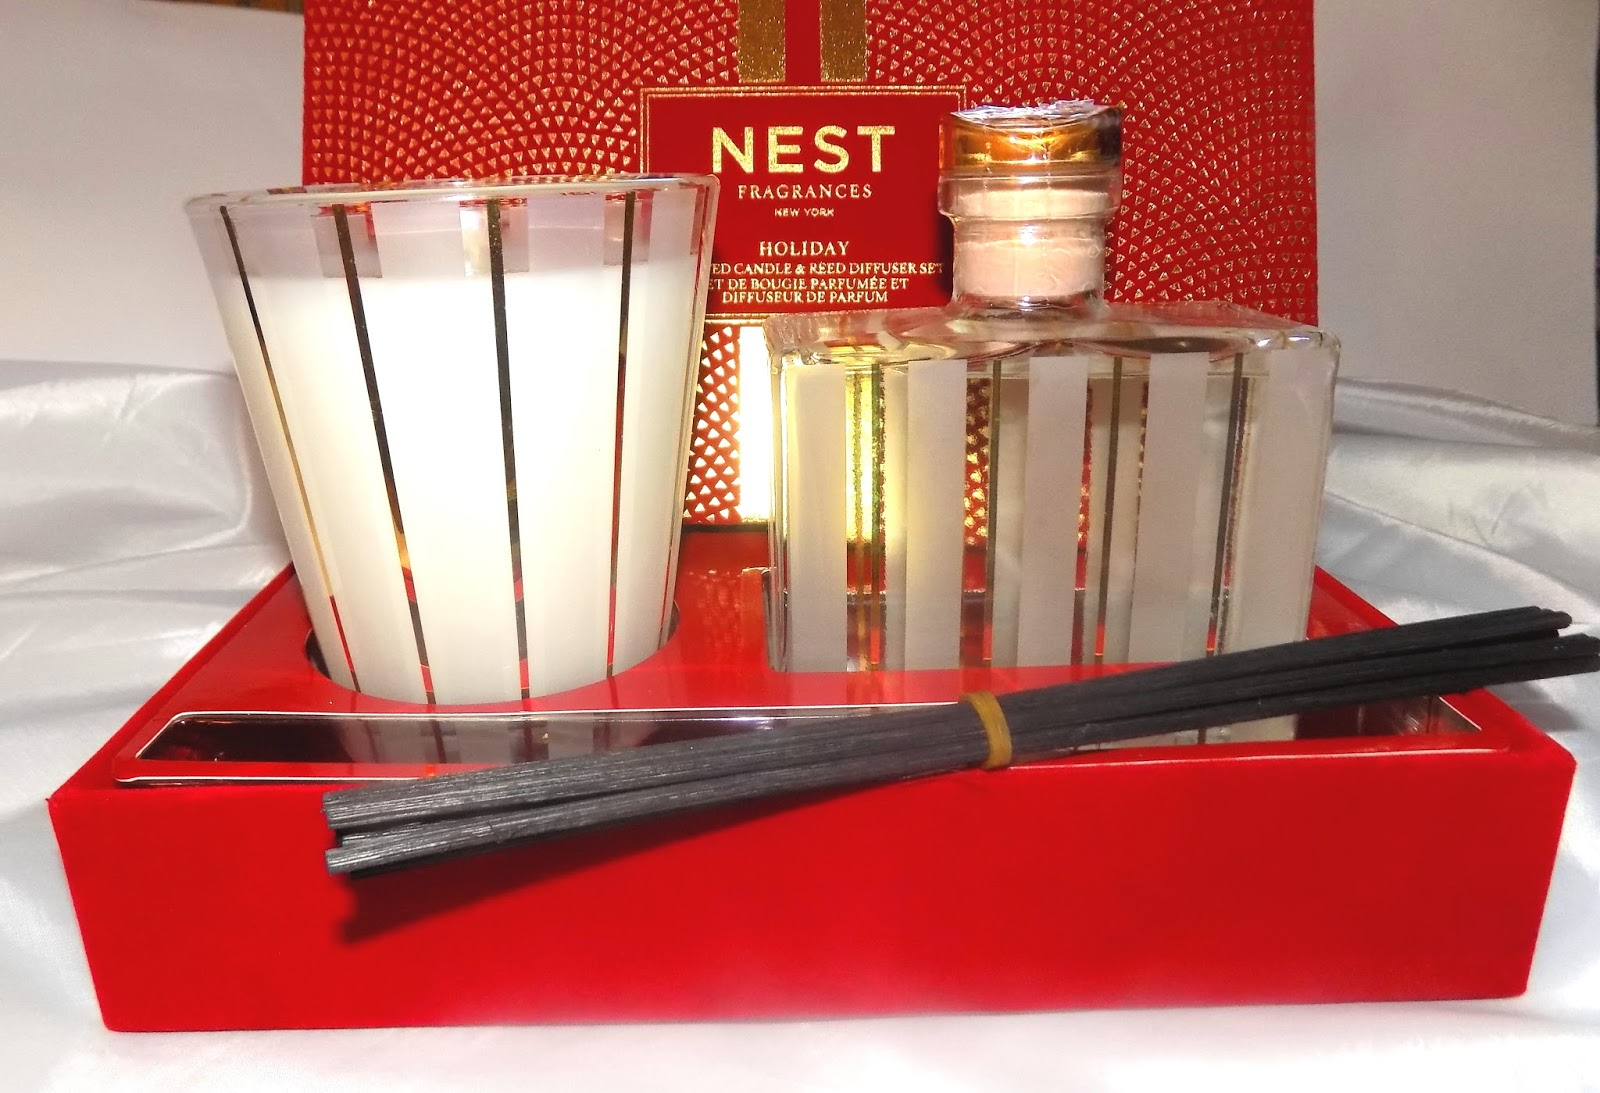 62911d7d01469 The Holiday Scented Candle   Reed Diffuser Set set houses a 8.1 oz classic  size Holiday scented candle and a large 5.9 oz liquid reed diffuser .